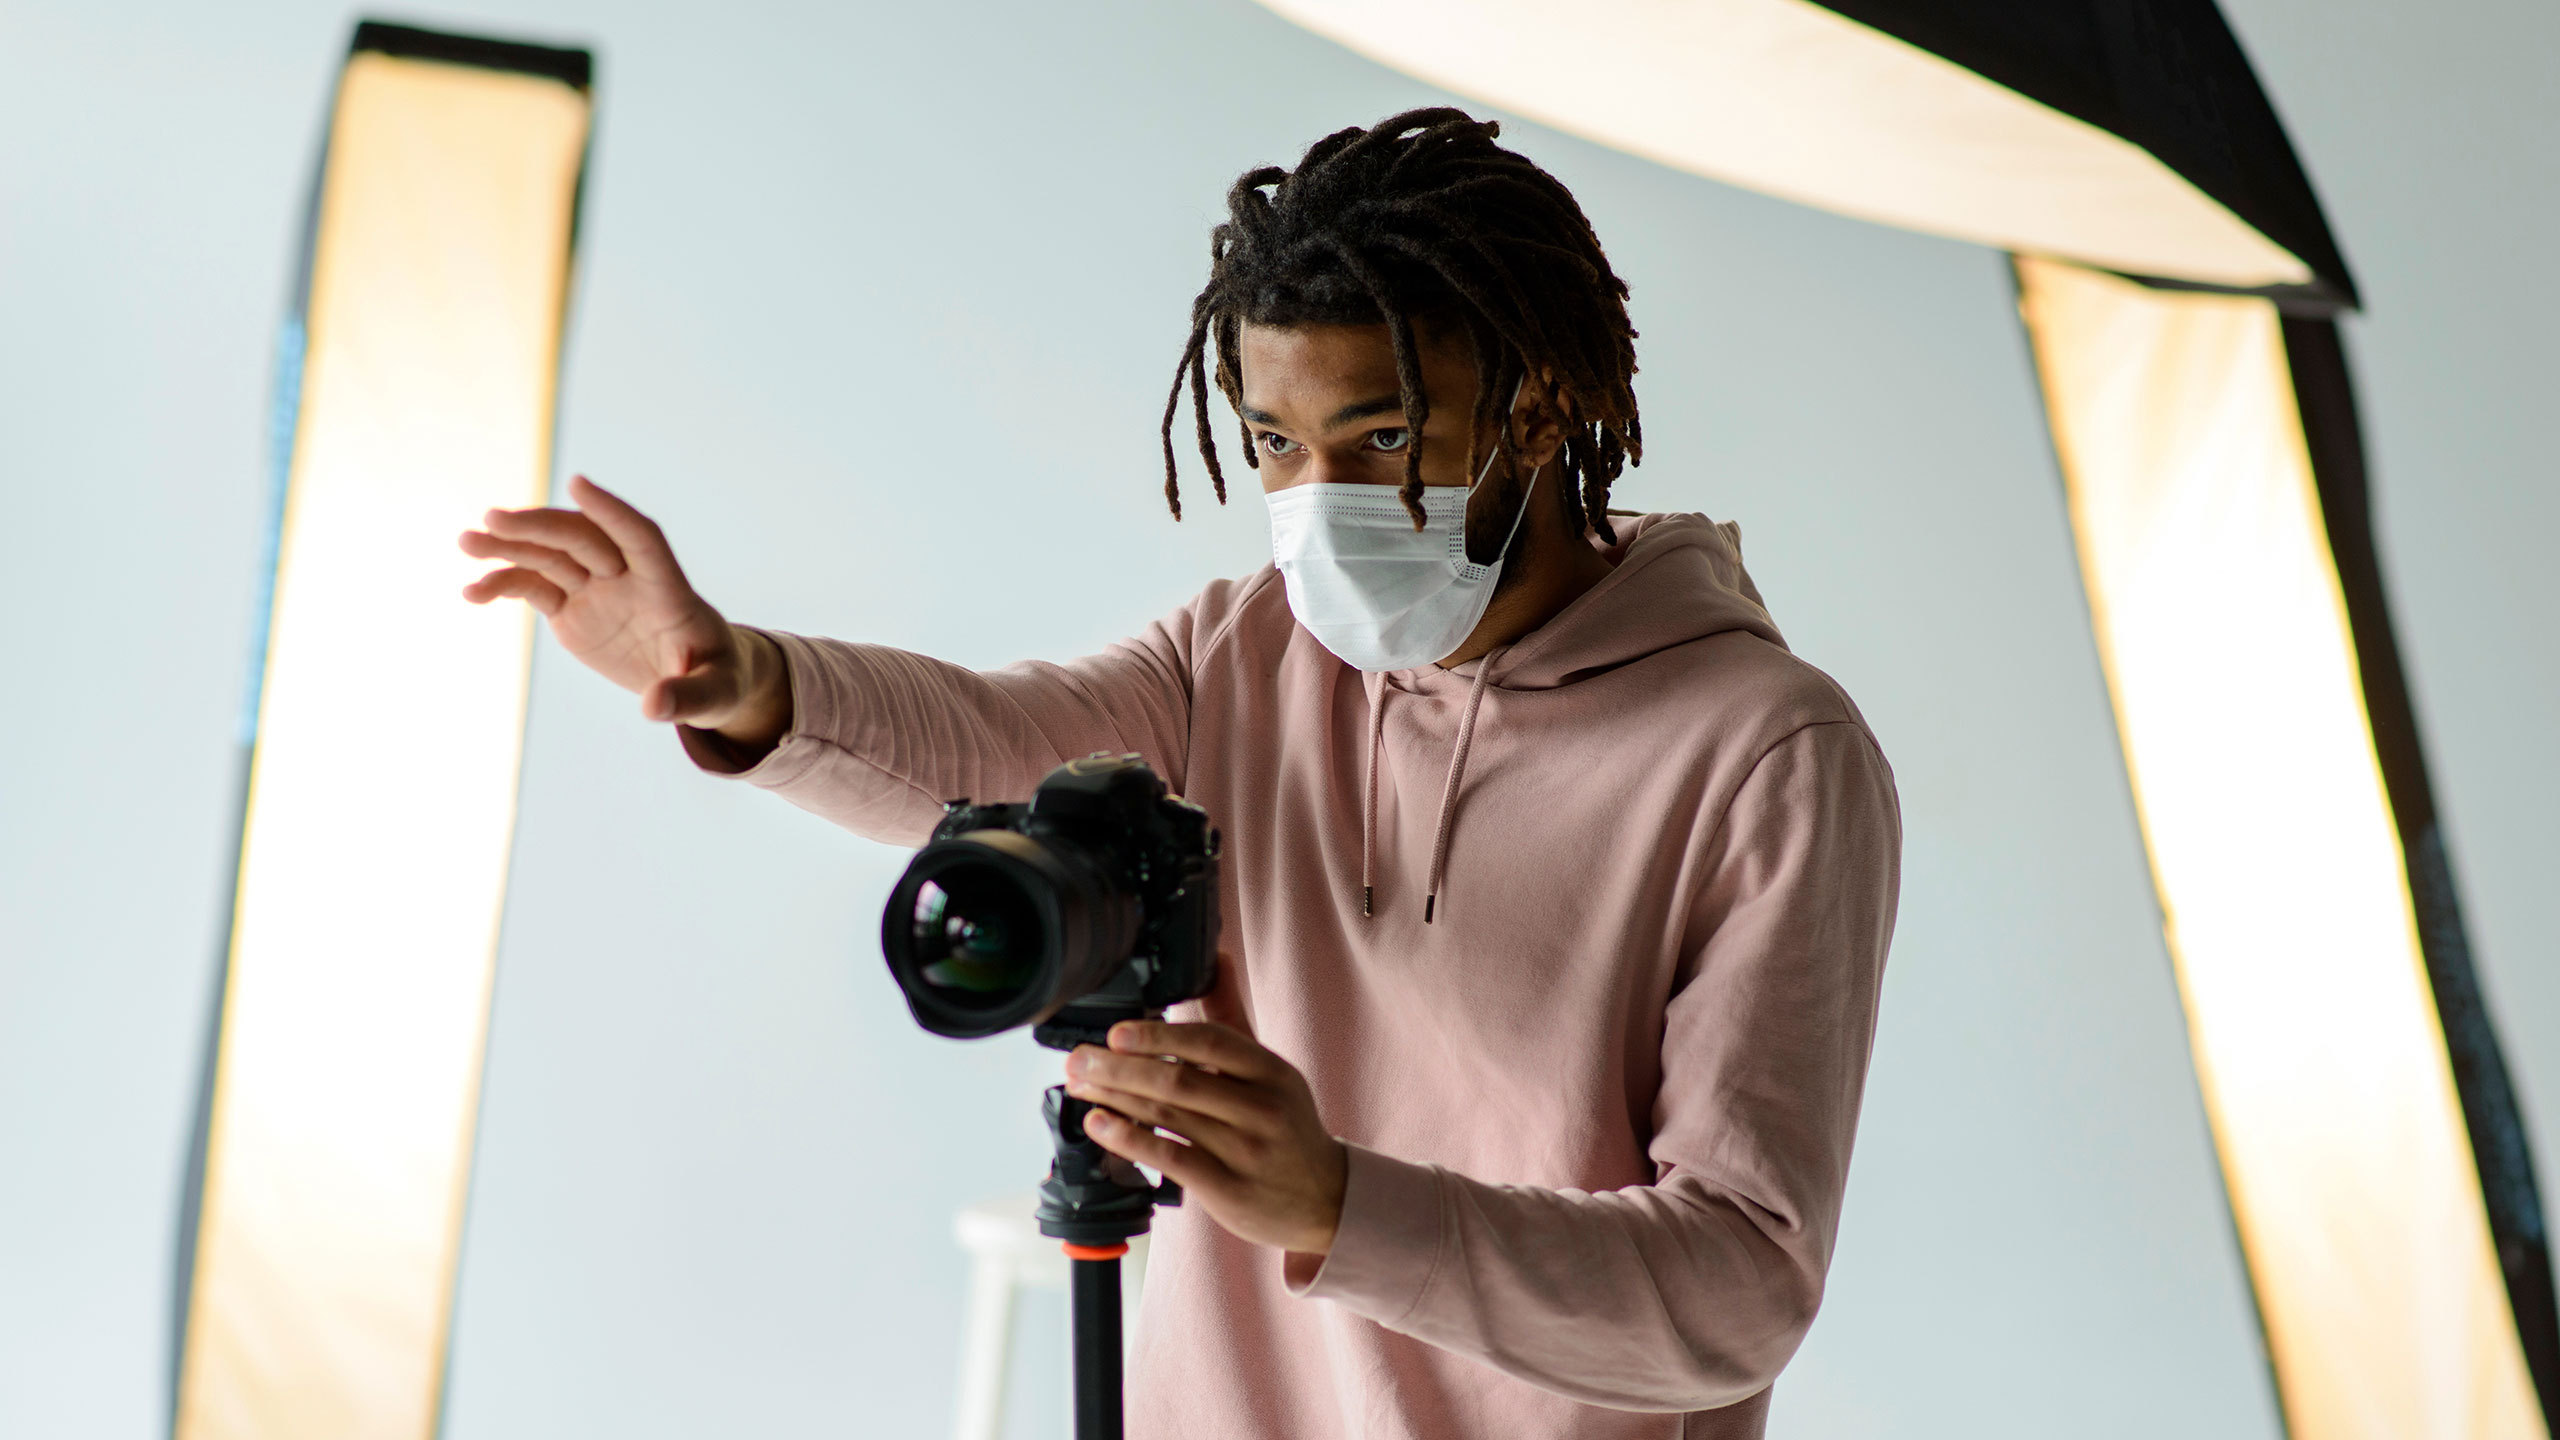 What Photographers Need To Be Ready For With The New Normal